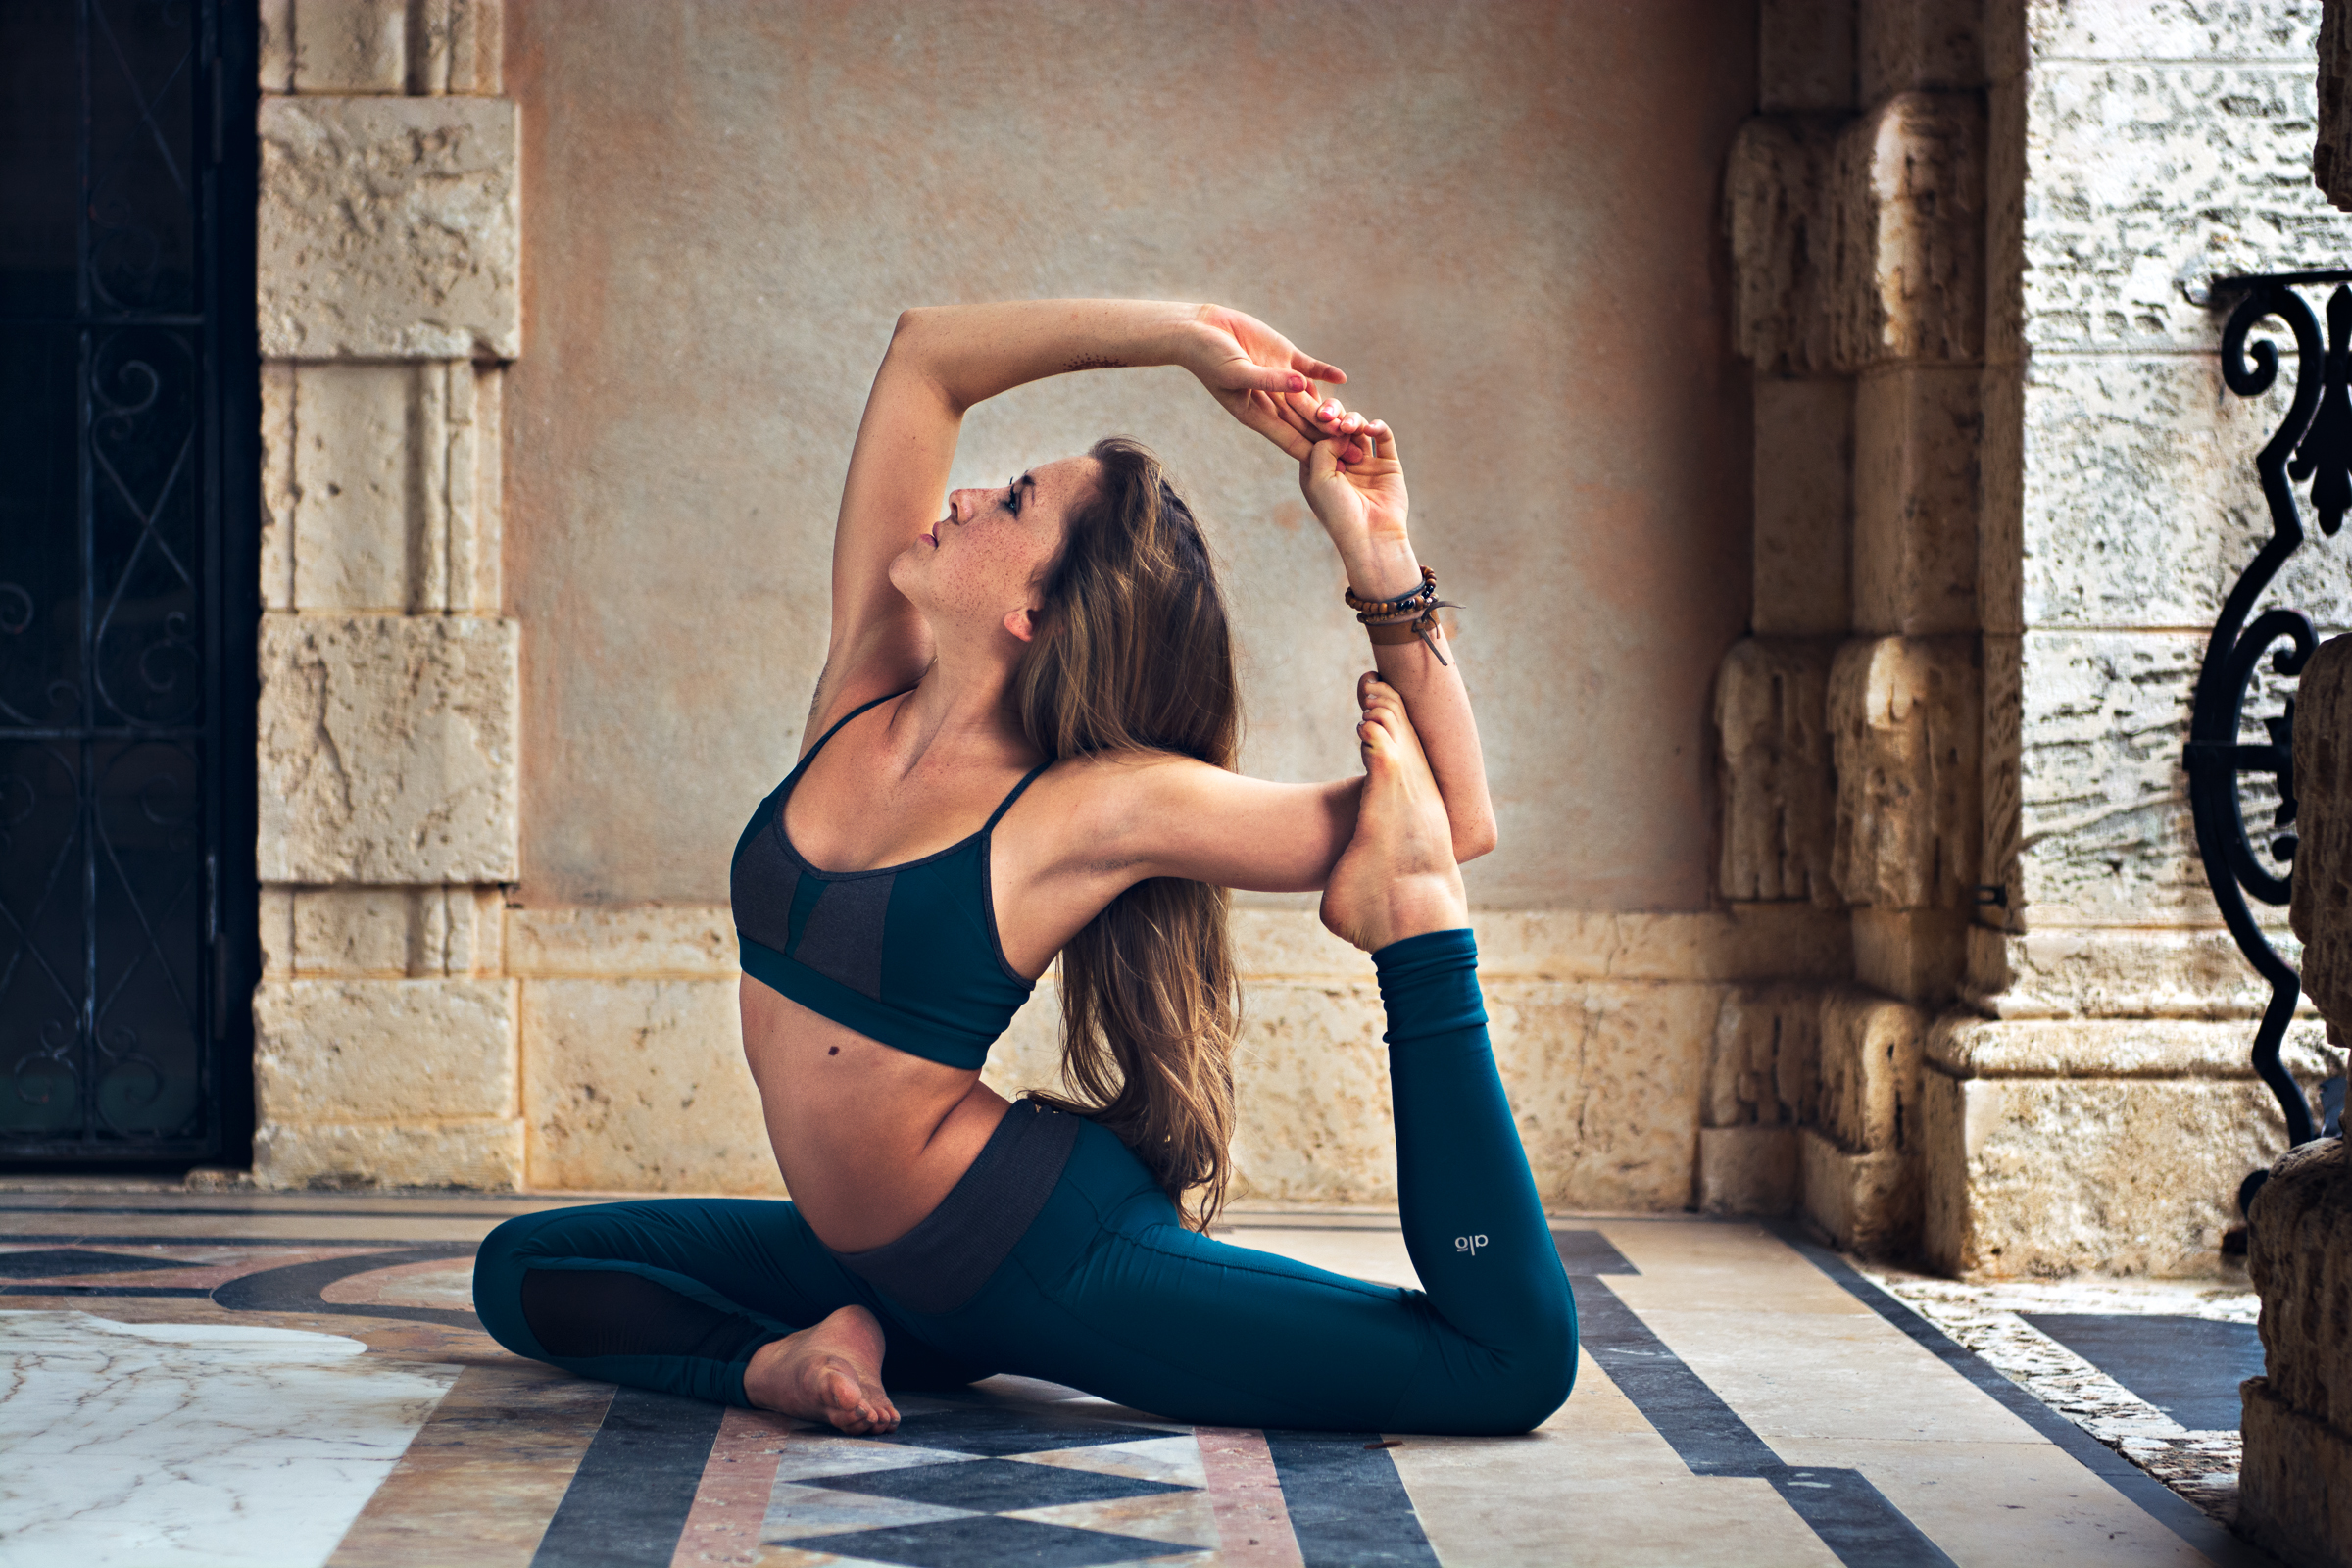 Yoga, lifestyle and portrait photographer - Cayman and Miami - image shot at Vizcaya Miami